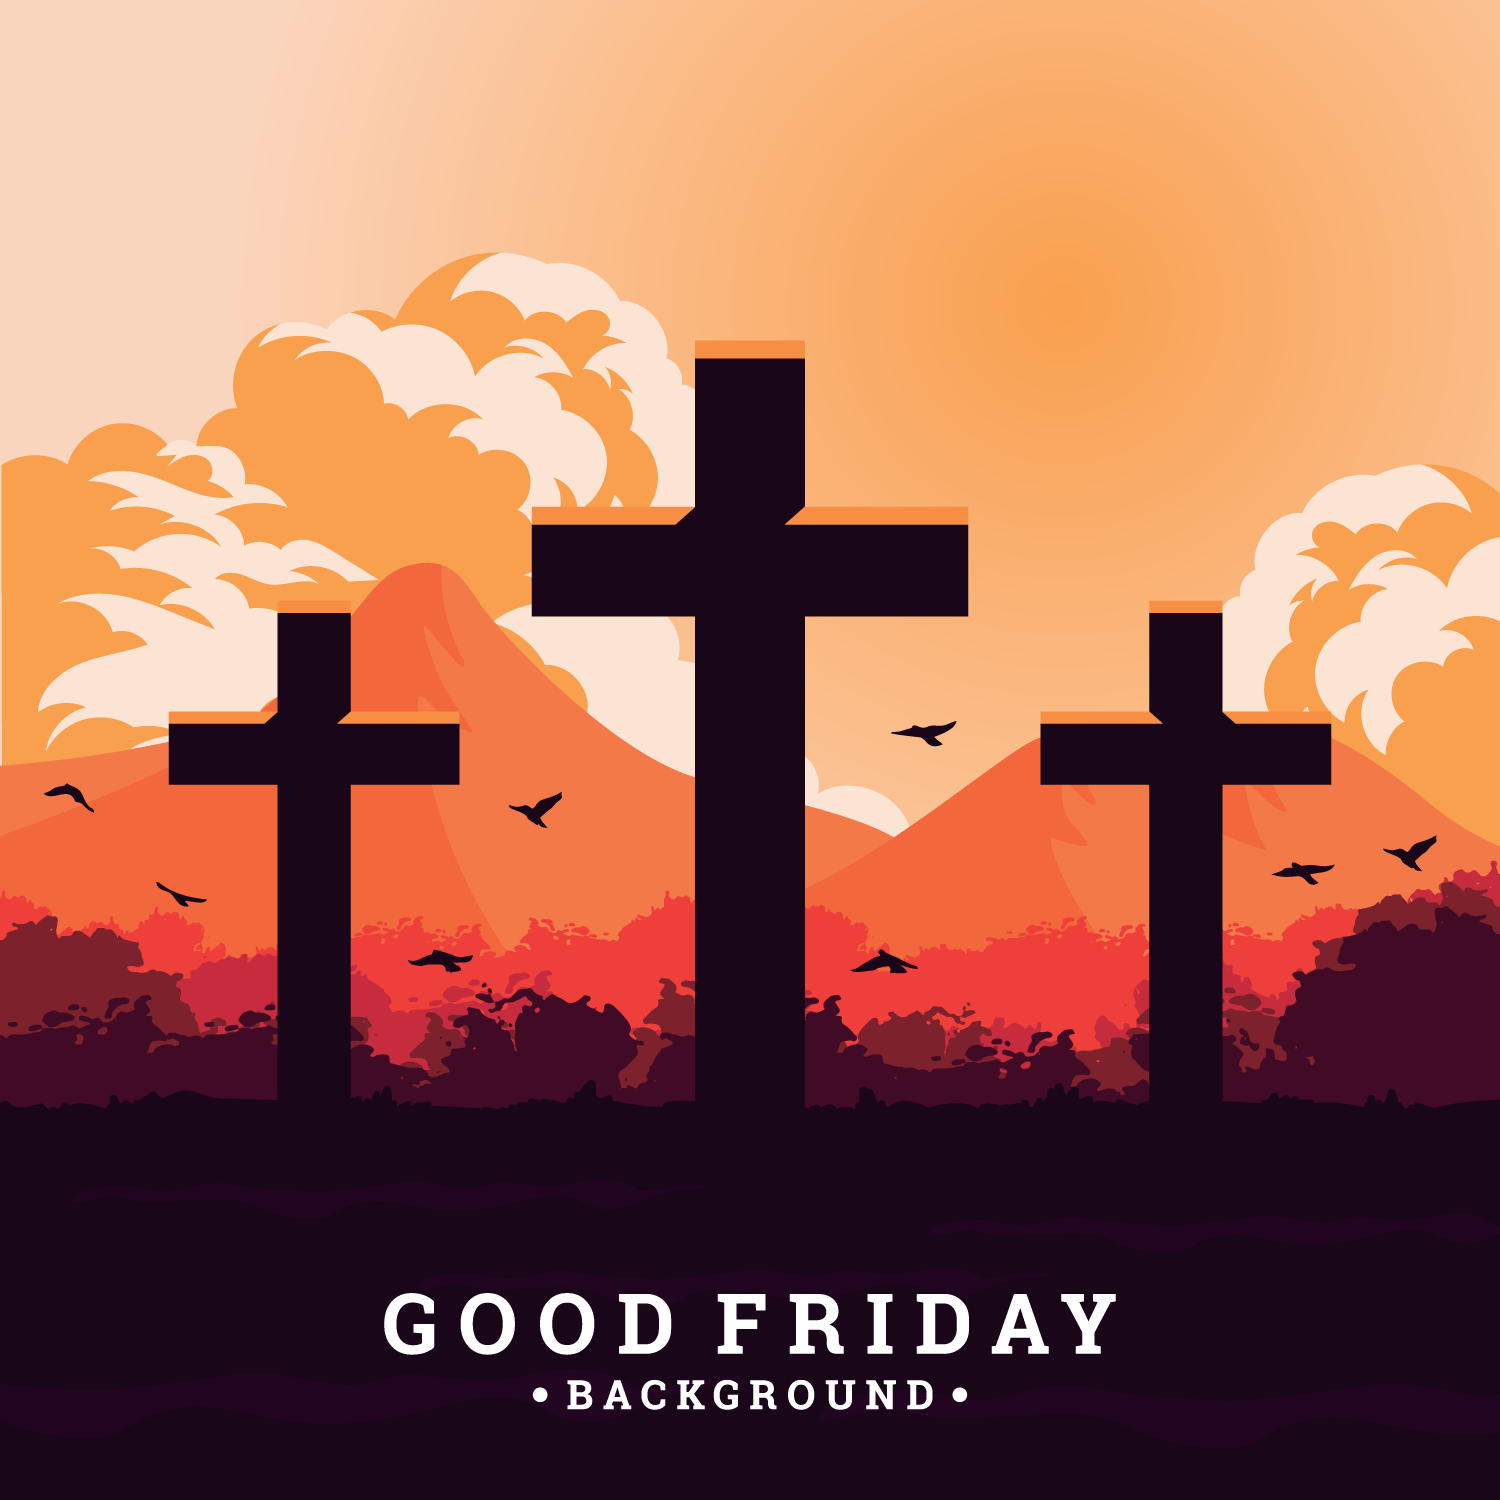 Good Friday Background - Download Free Vector Art, Stock ... | 1500 x 1500 png 176kB